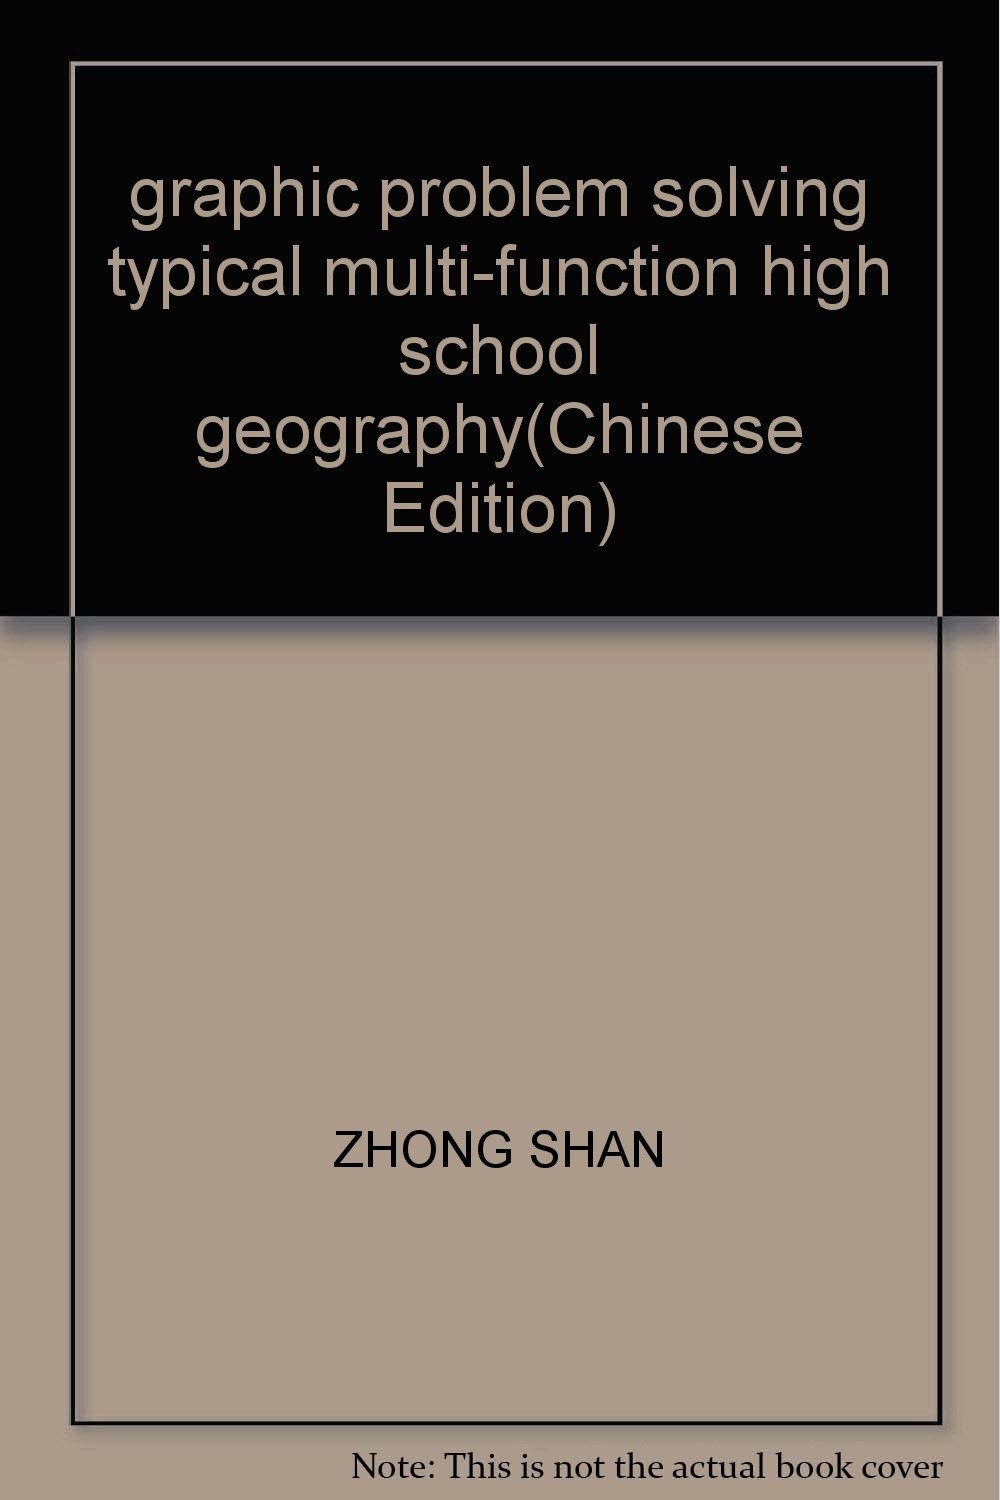 graphic problem solving typical multi-function high school geography(Chinese Edition) ebook